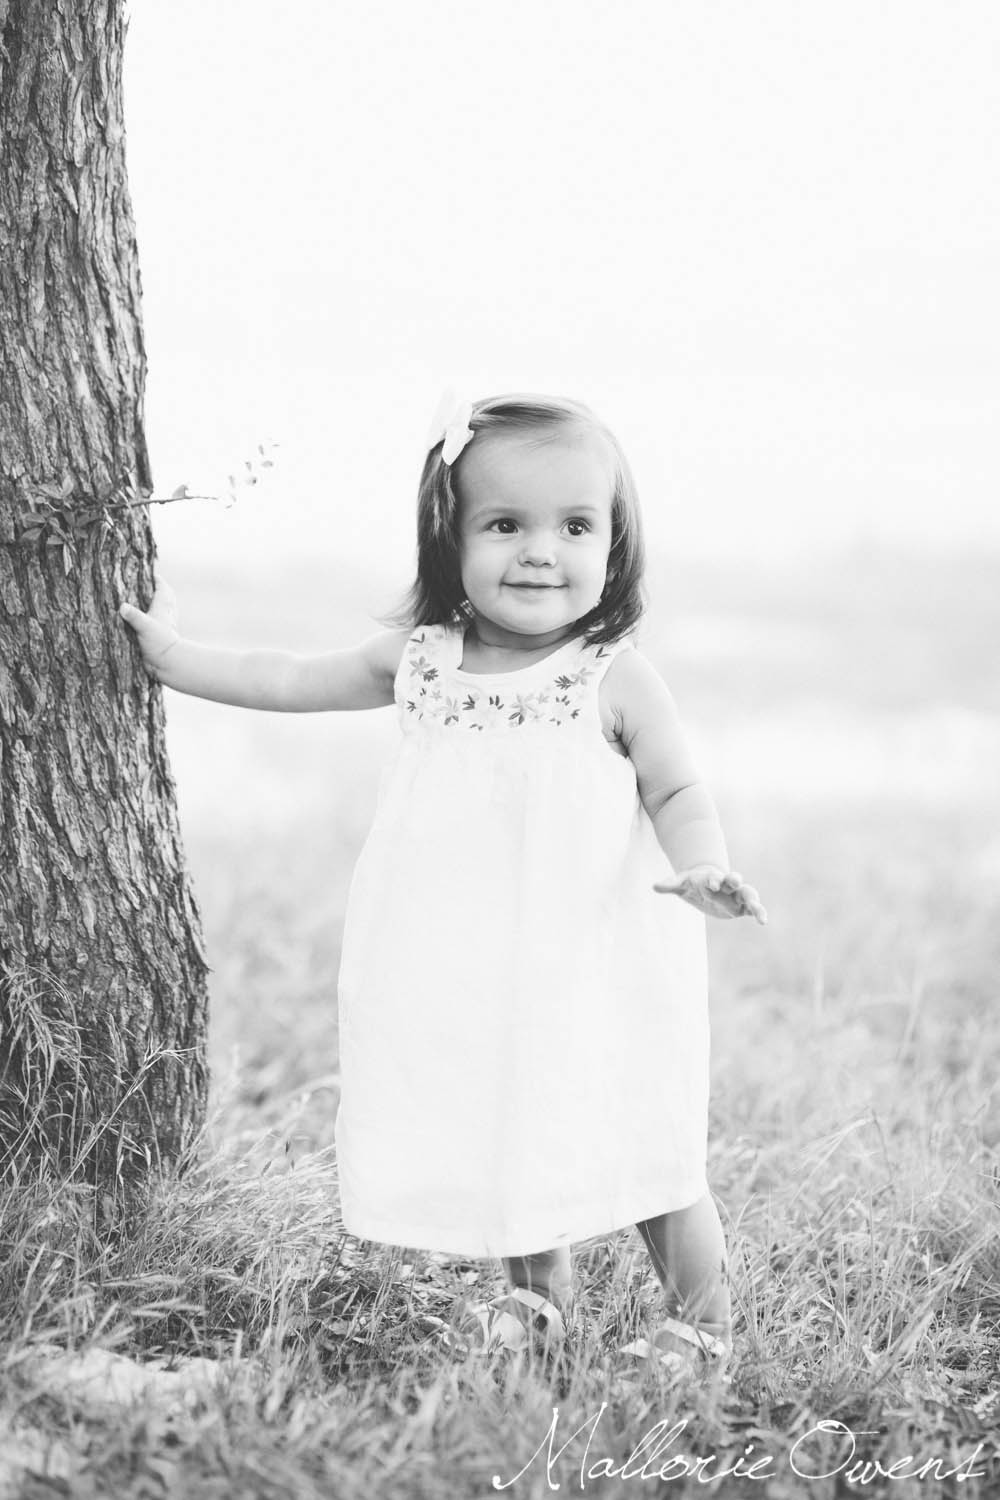 Child Photographer in Austin, Texas | MALLORIE OWENS